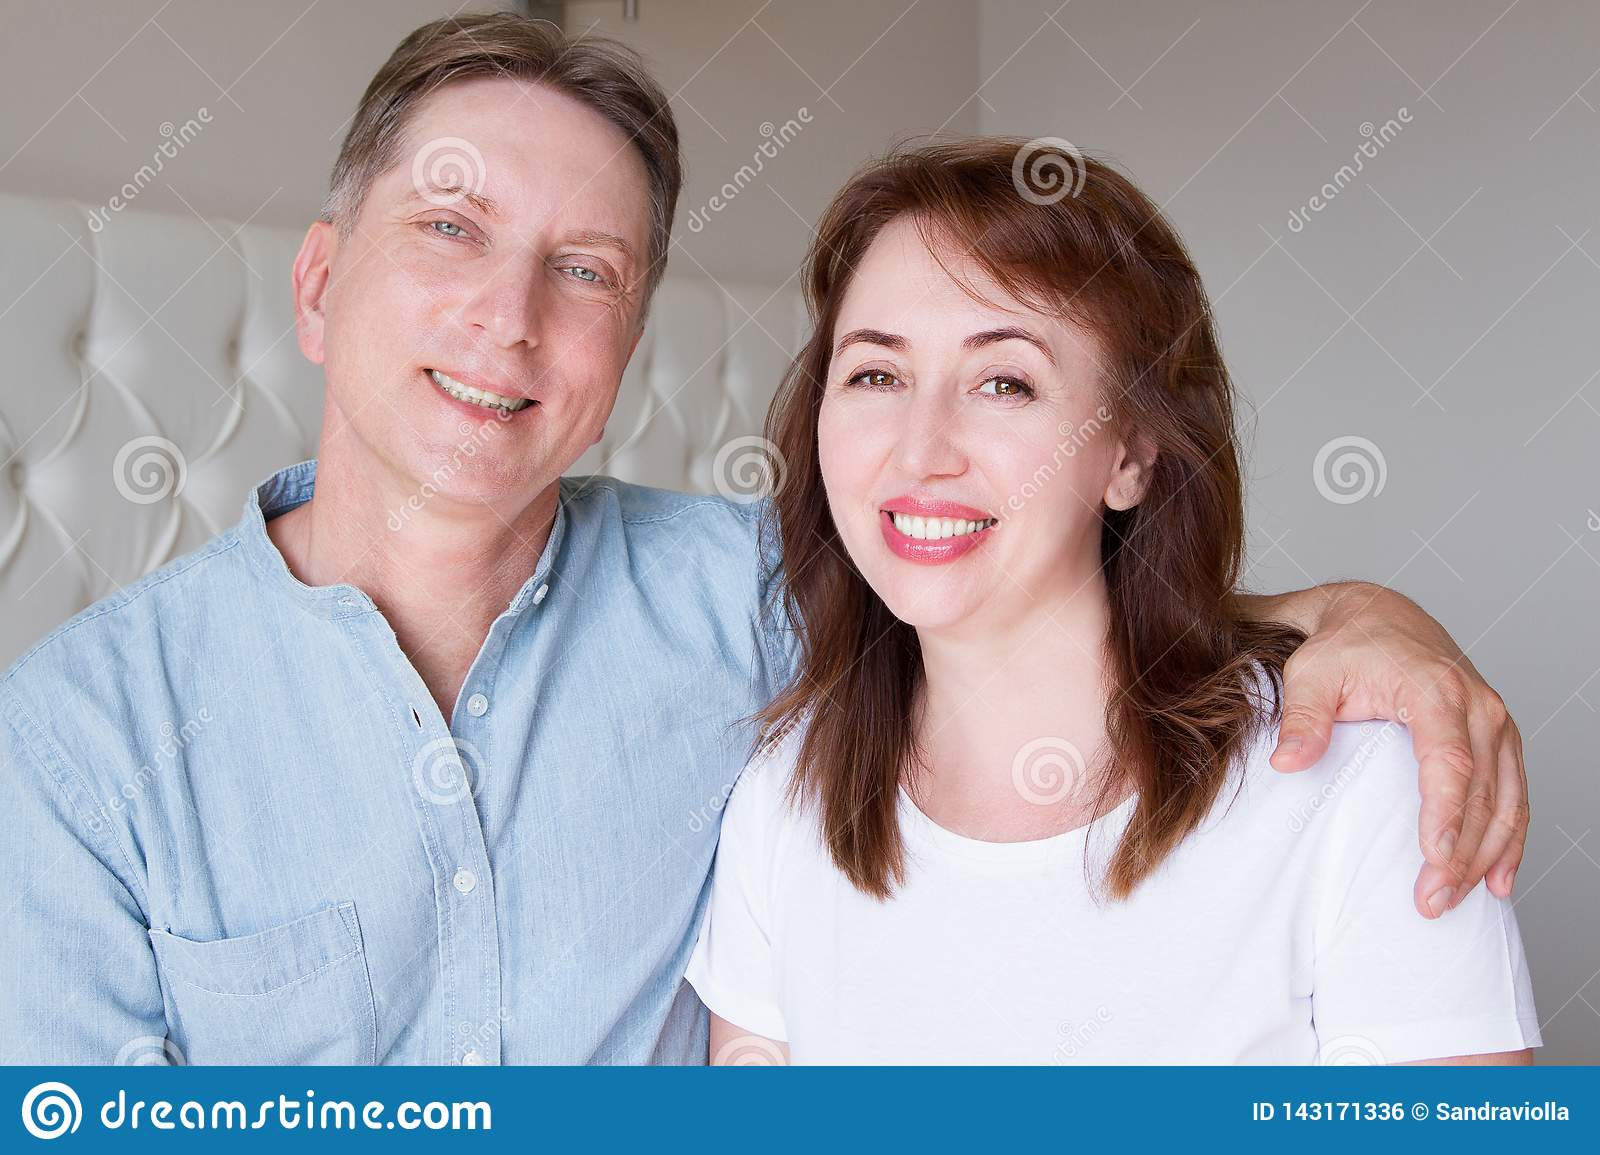 Happy closeup people faces. Smiling middle age couple at home. Family fun time weekend and strong love relationship. Healthy smile